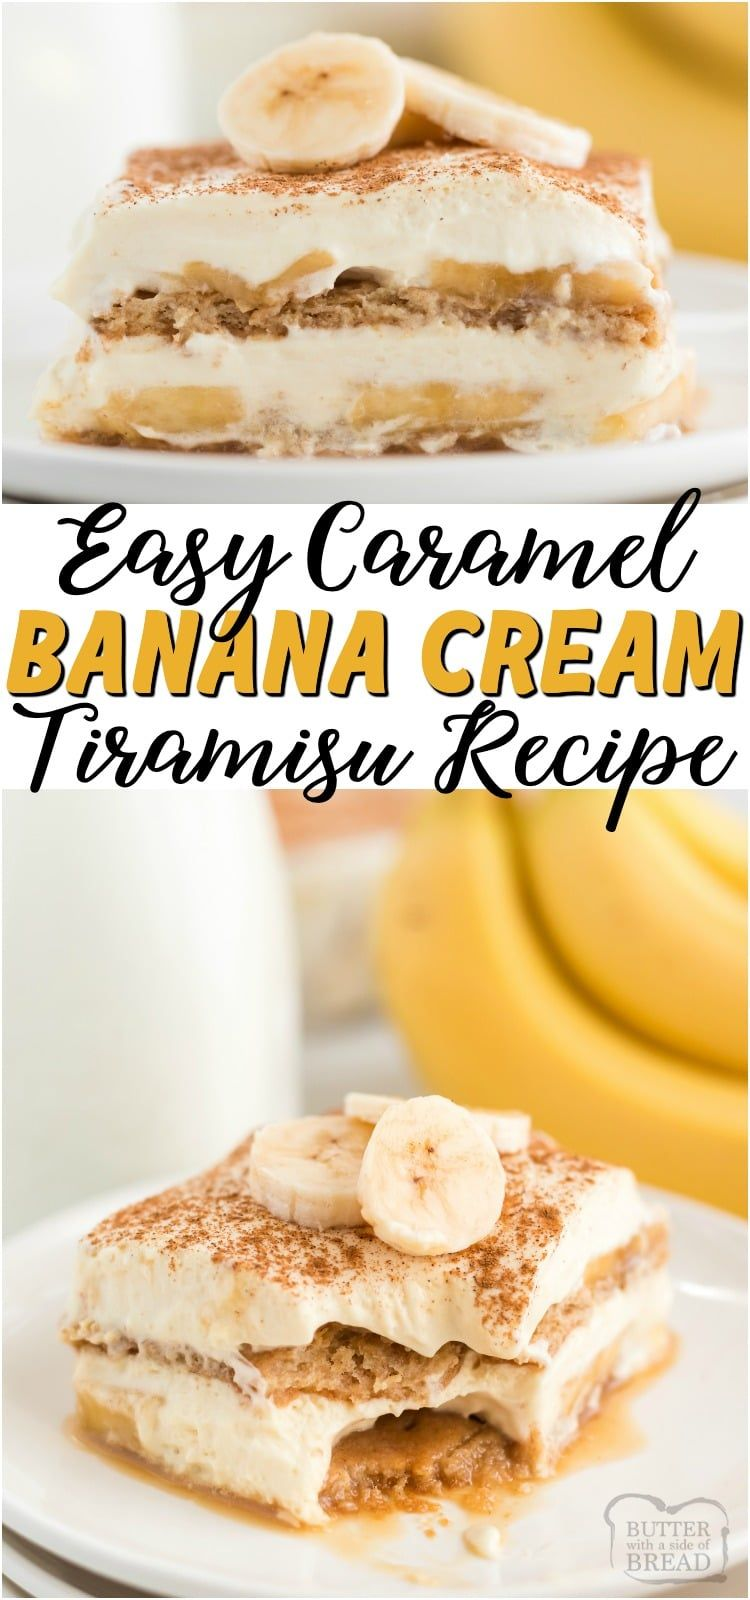 CARAMEL BANANA CREAM LAYERED DESSERT – Butter with a Side of Bread